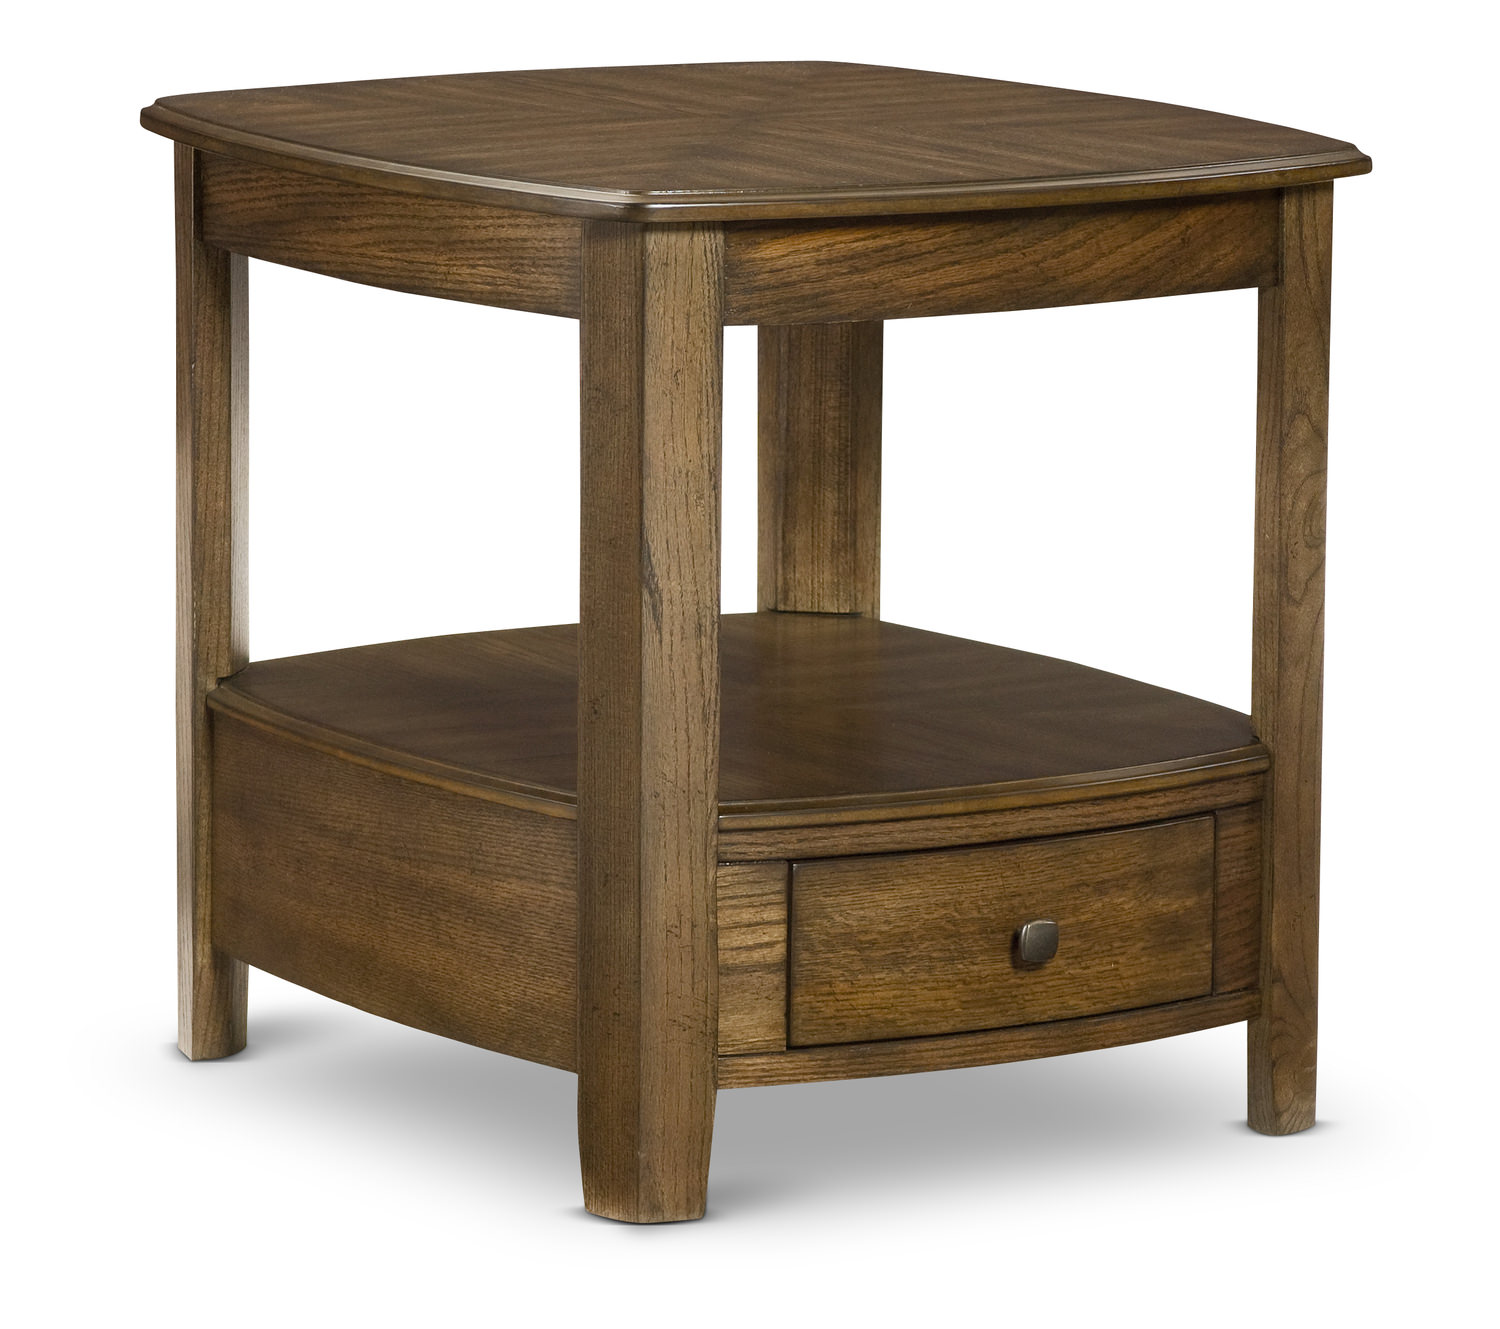 primo end table hom furniture medium brown aqua blue accent designer bedside lamps wolves website black side lamp granby coffee wood projects out pallets winsome craftsman